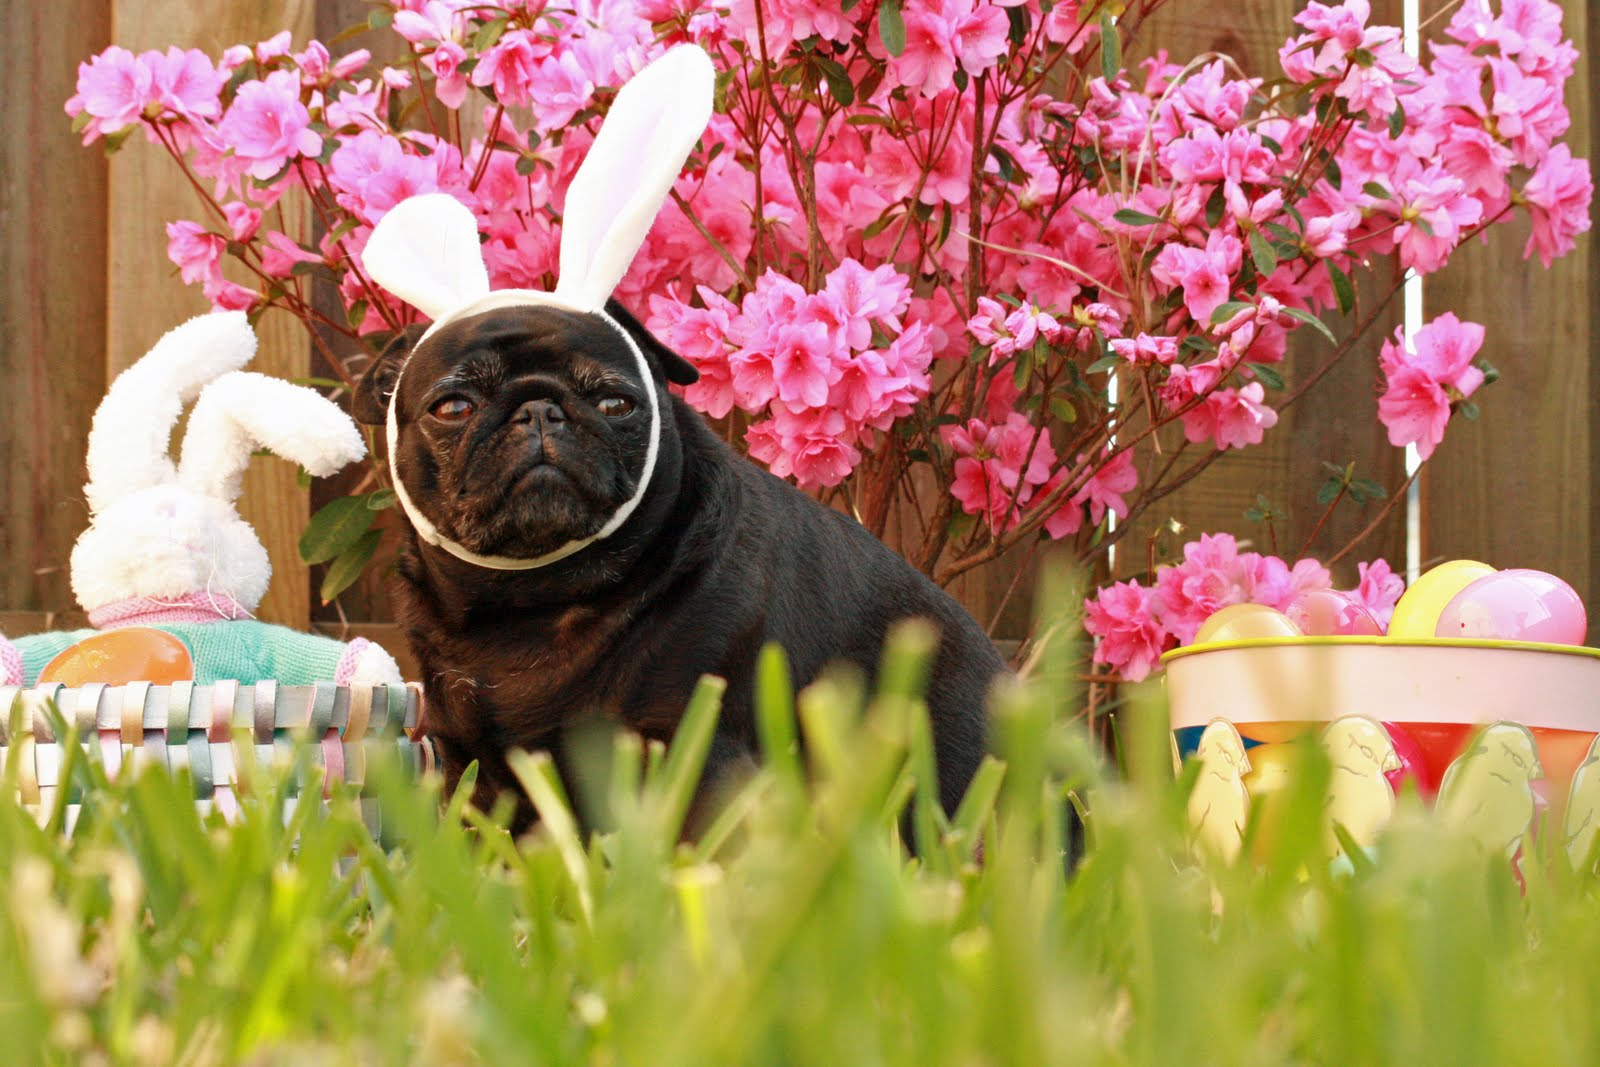 Easter Pug in the grass photo and wallpaper Beautiful Easter Pug in 1600x1067